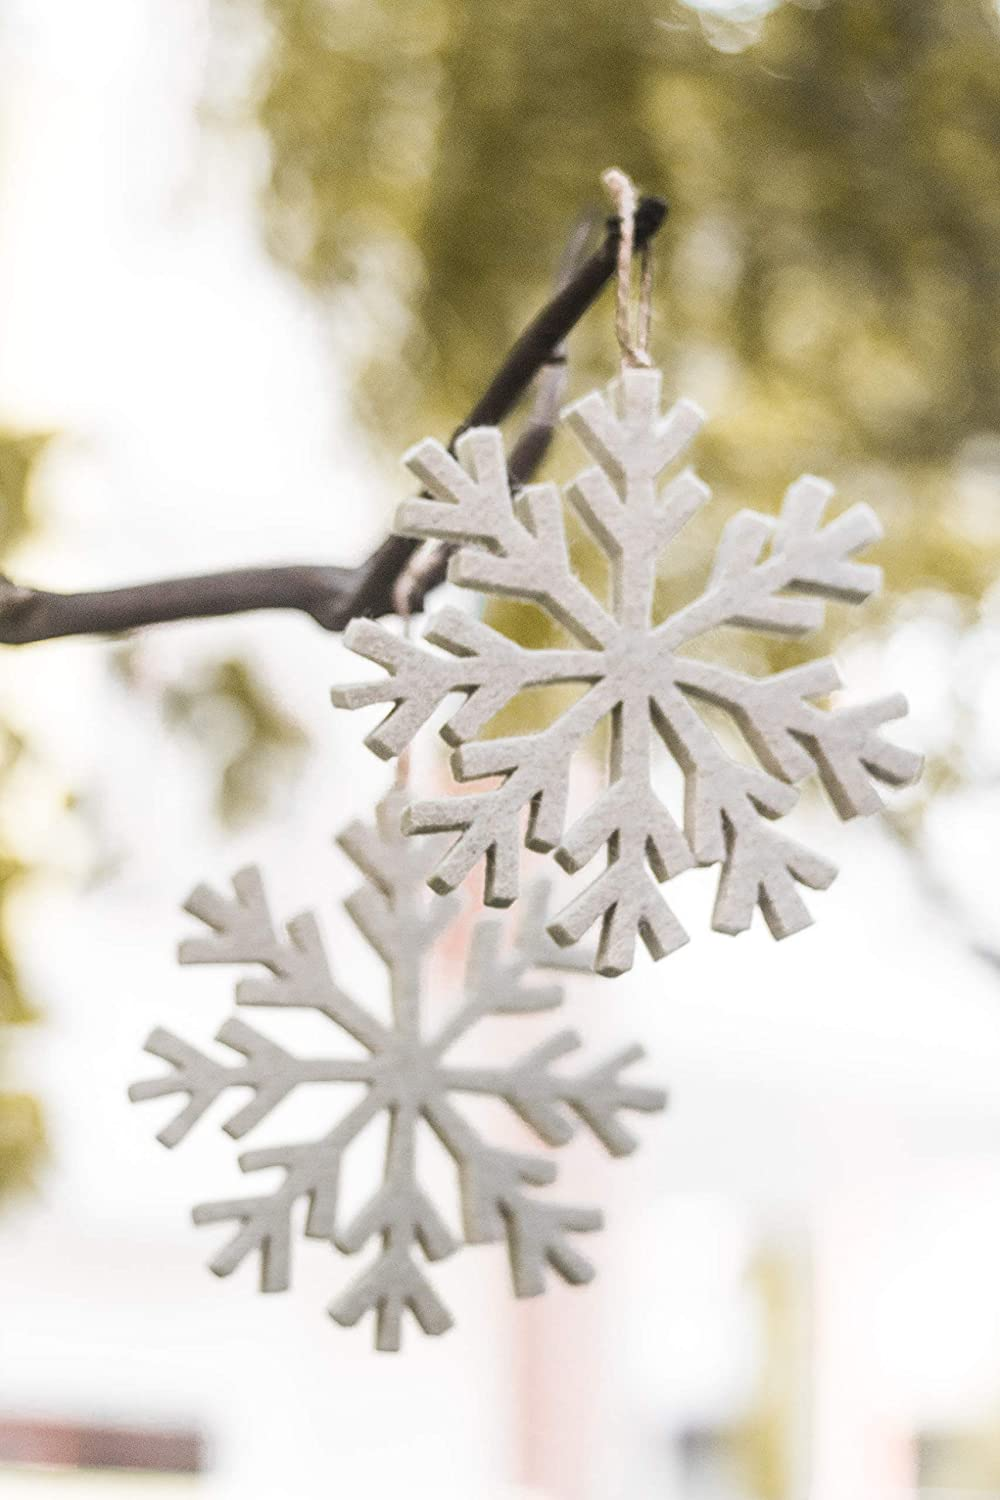 LWH De Kulture Hand Made Showpiece Hanging Felt Snowflake Ornament 5x5x5 Home Decoration Party Decorative Office Decor Ideal Year Birthday Christmas Decoration Easter Gift